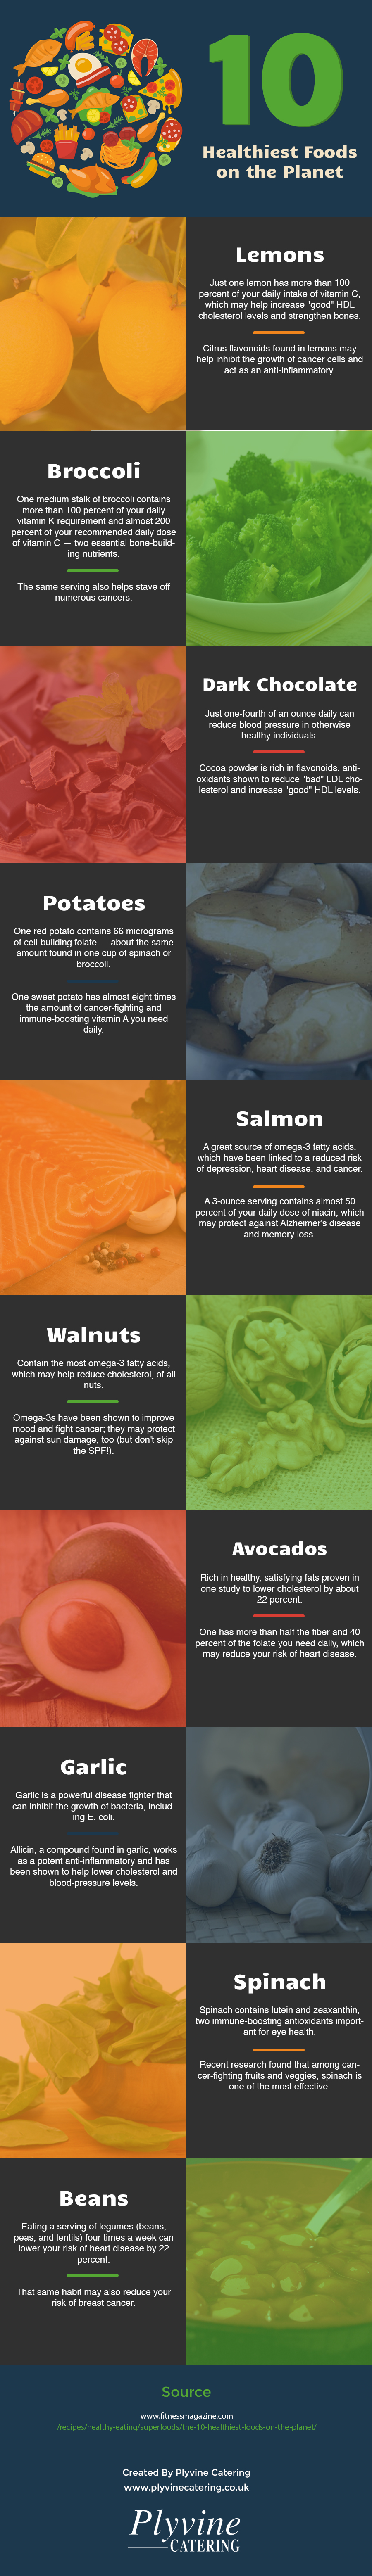 The 10 Healthiest Foods on the Planet